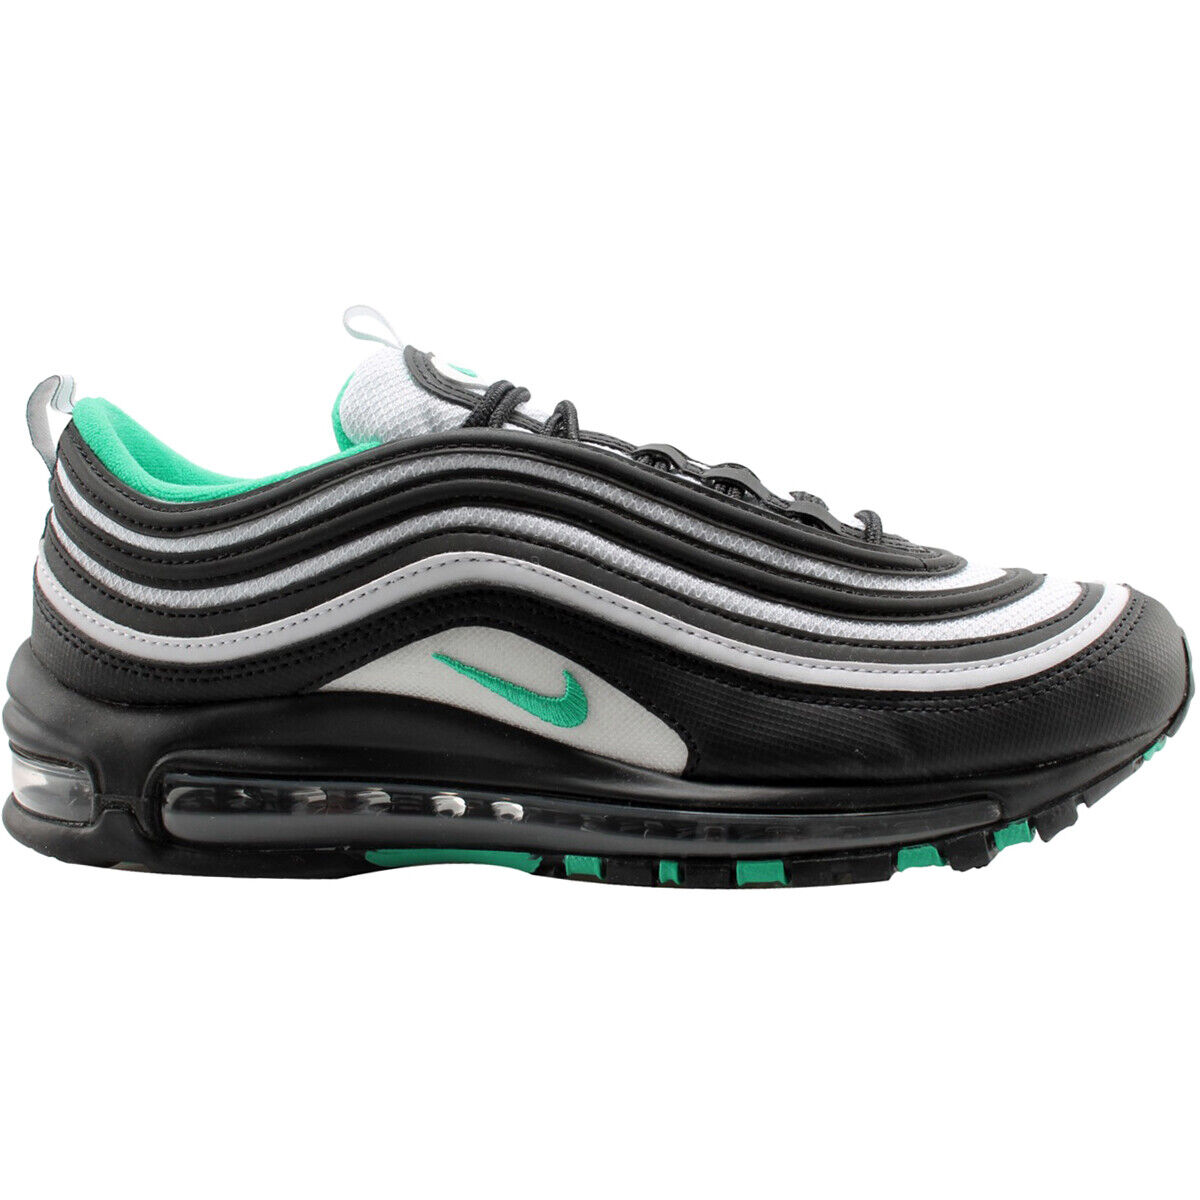 Nike Air Max 97 Textile Synthetic Retro Running Low-Top Herren Trainer